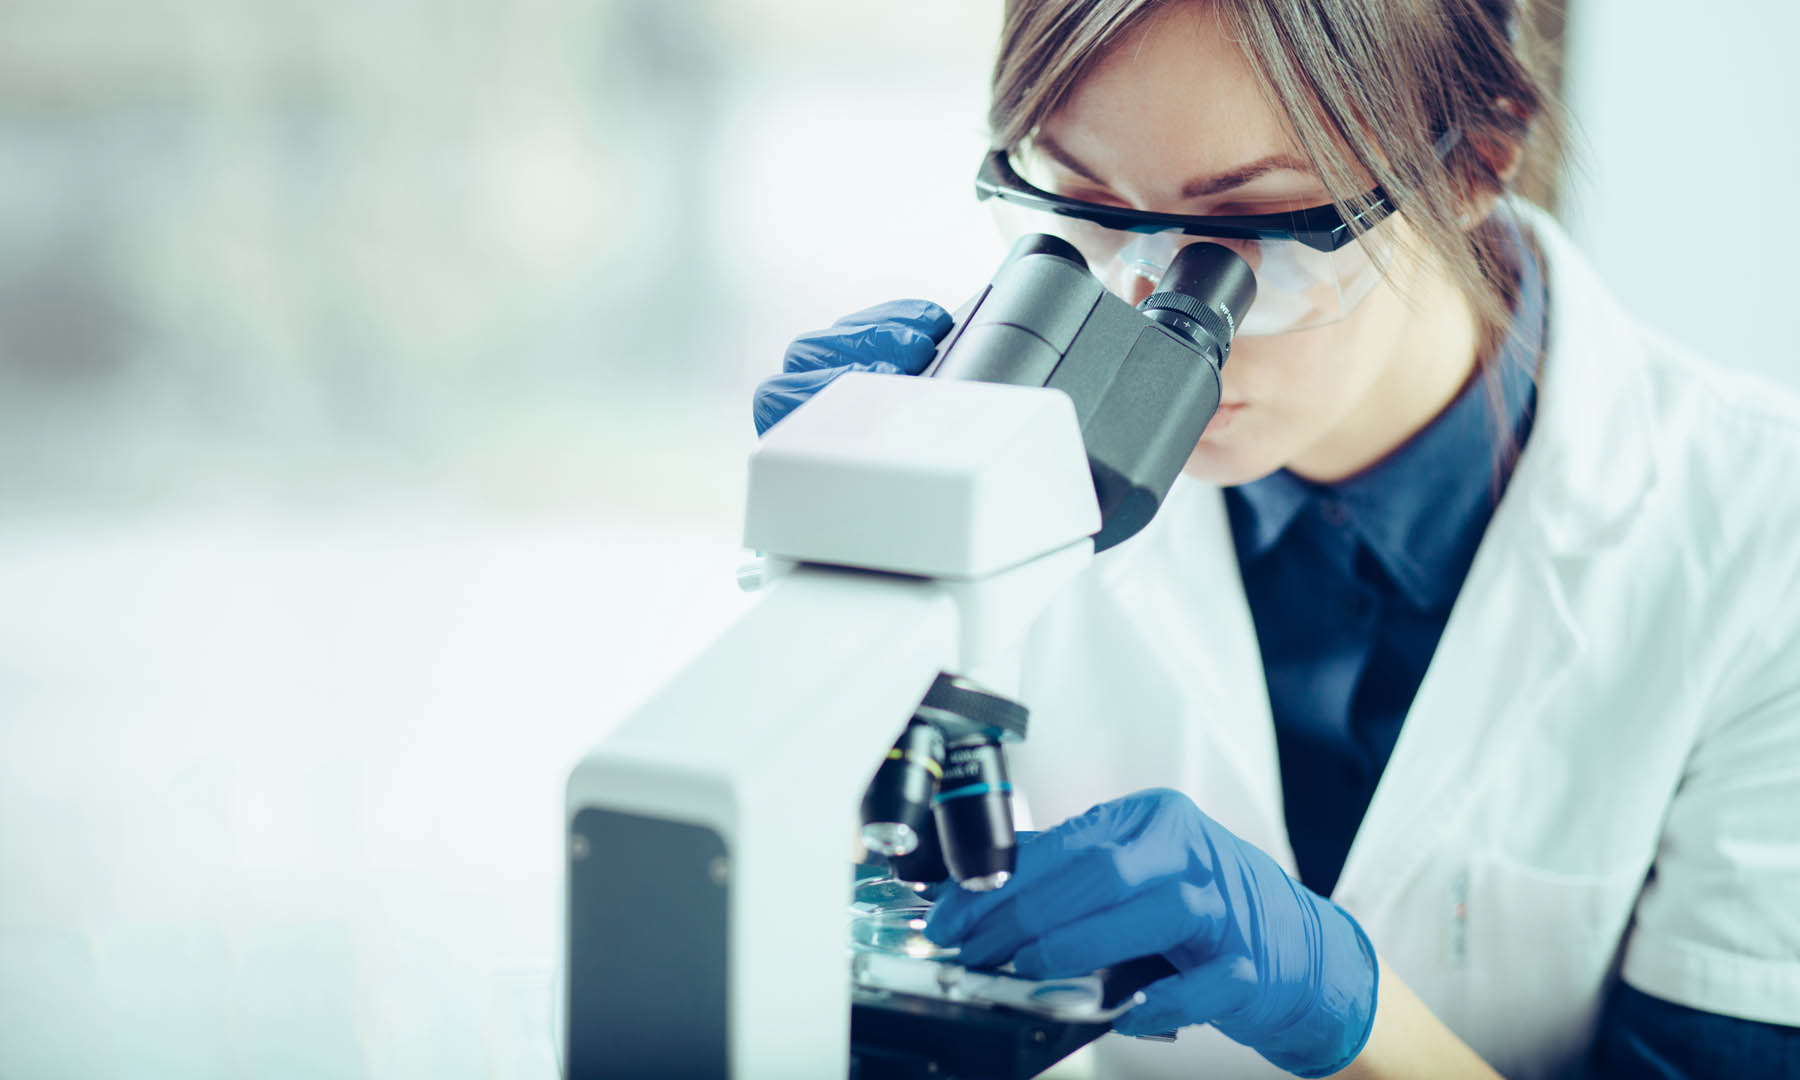 Picture of a scientist looking through a microscope.